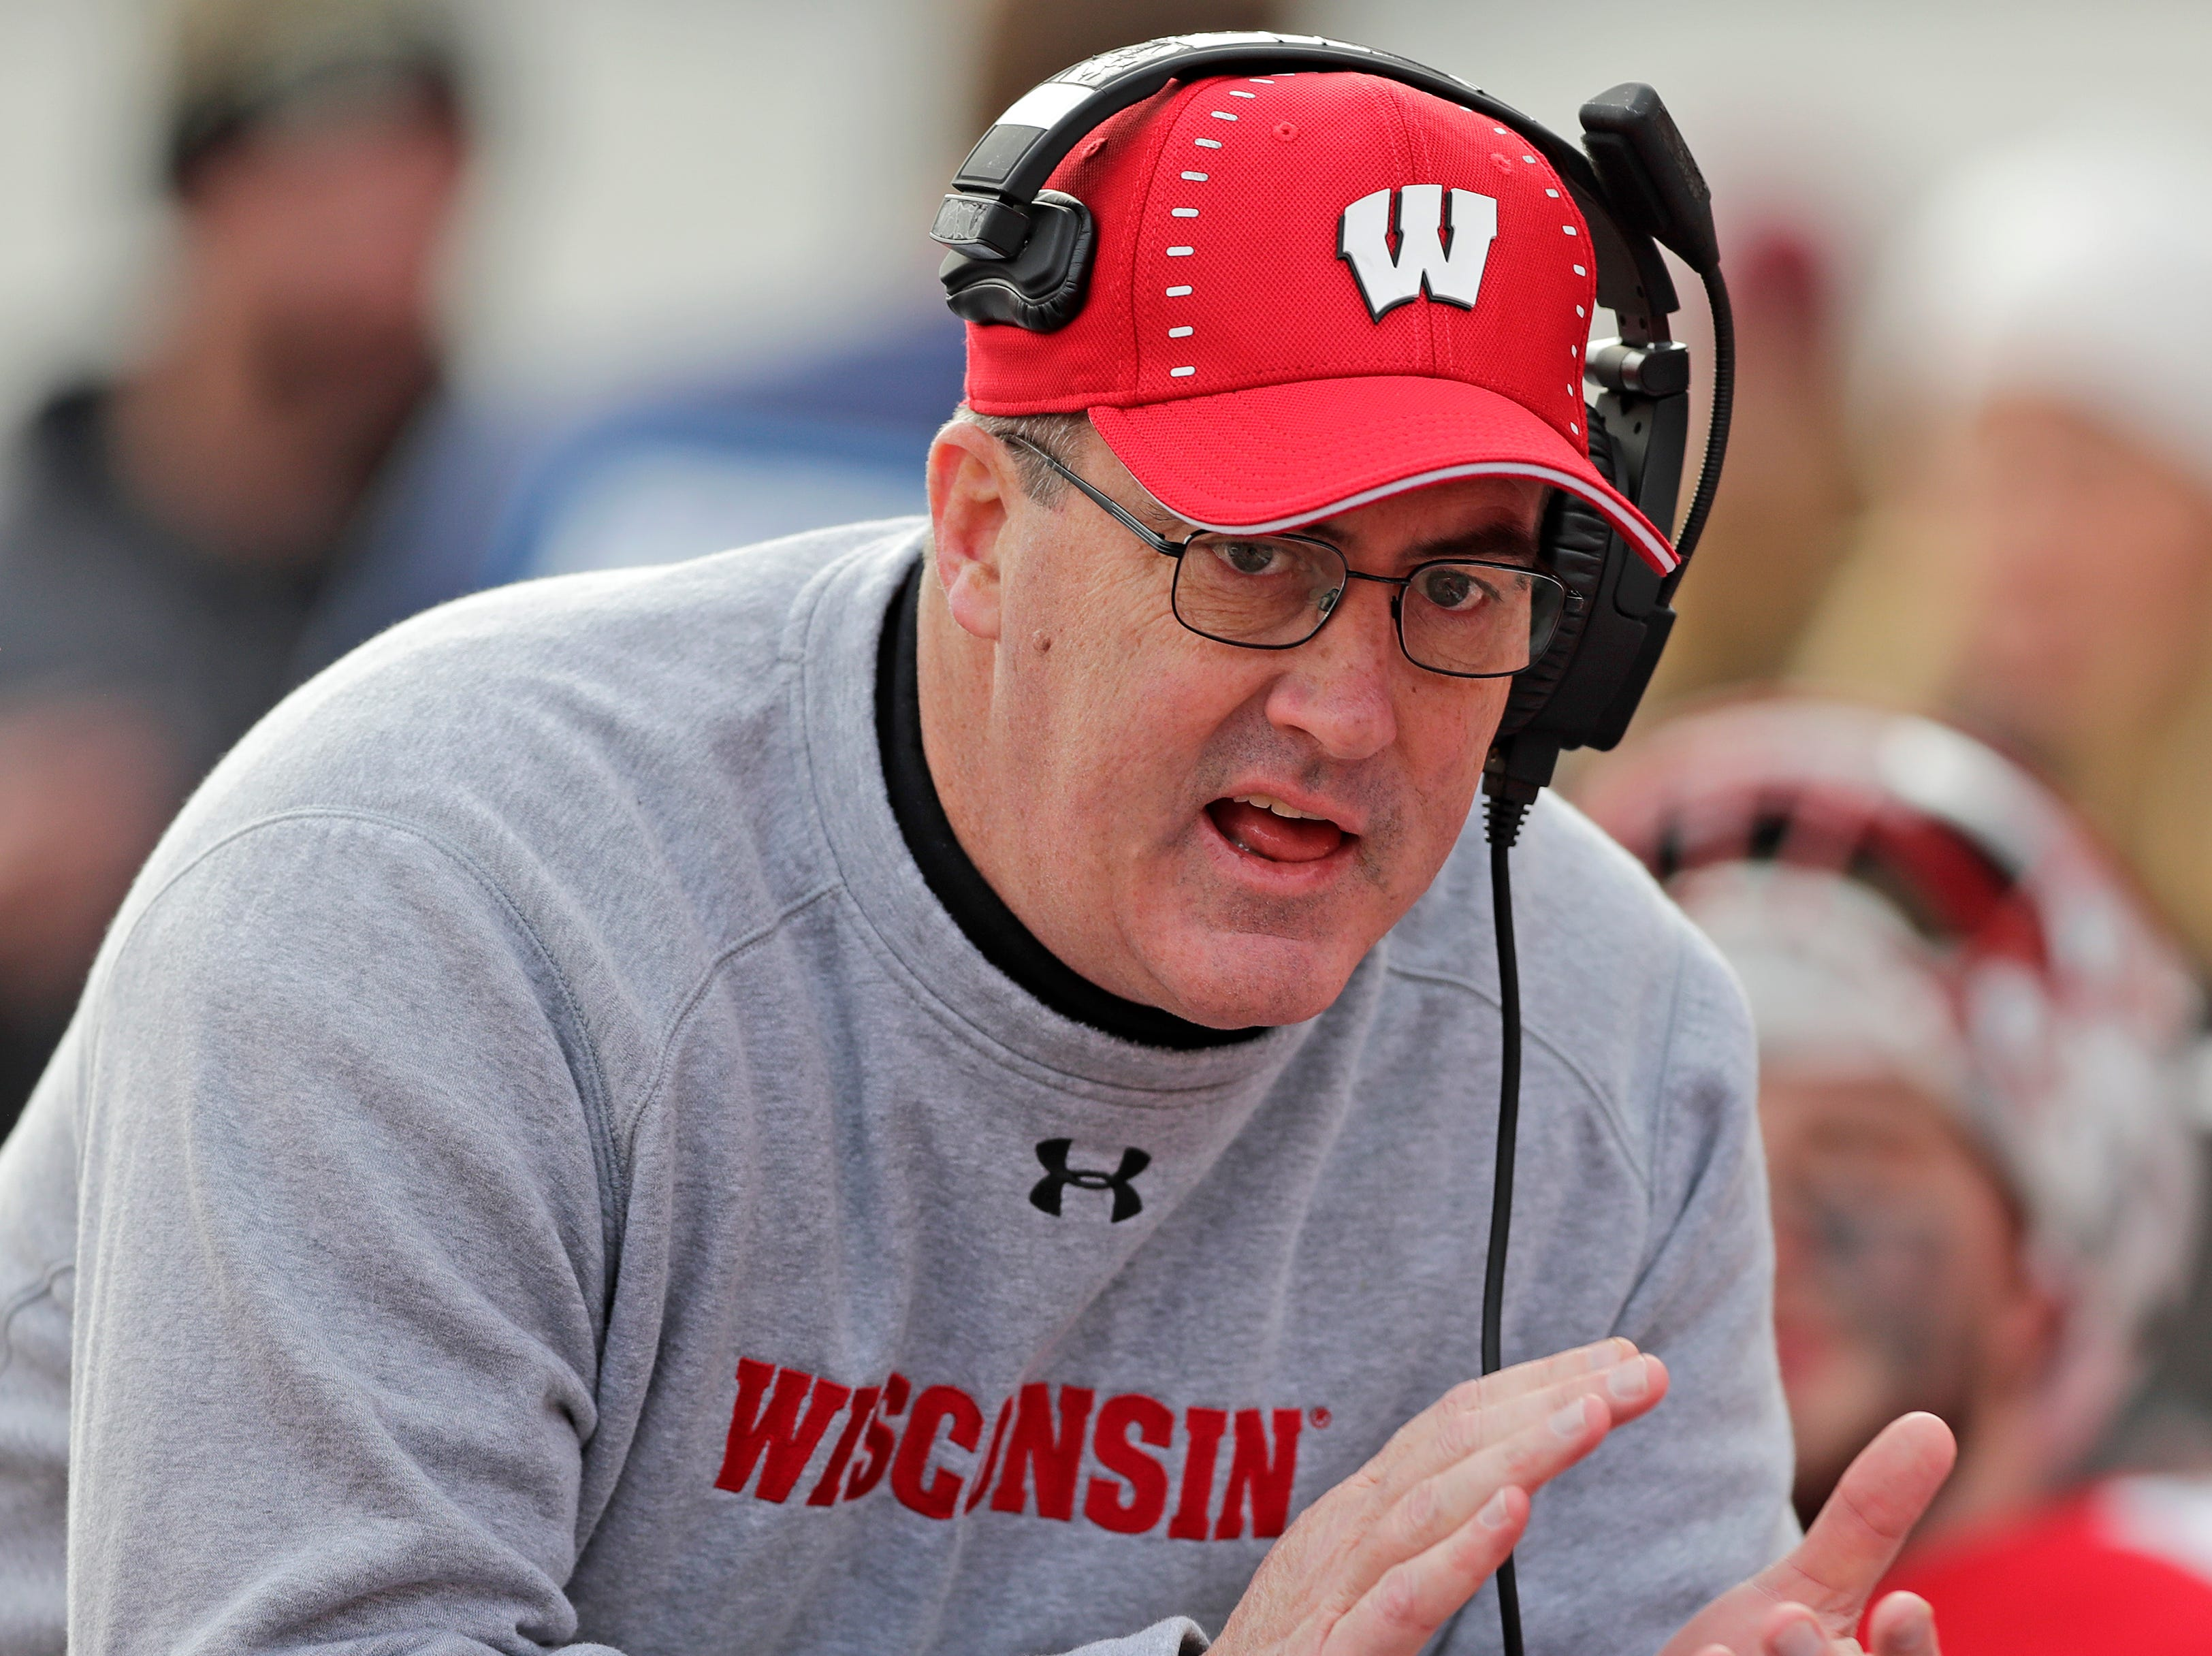 Wisconsin Badgers head coach Paul Chryst talks to his players on the bench during the second half of a Big Ten football game against the Rutgers Scarlet Knights at Camp Randall Stadium on Saturday, November 3, 2018 in Madison, Wis.Adam Wesley/USA TODAY NETWORK-Wisconsin